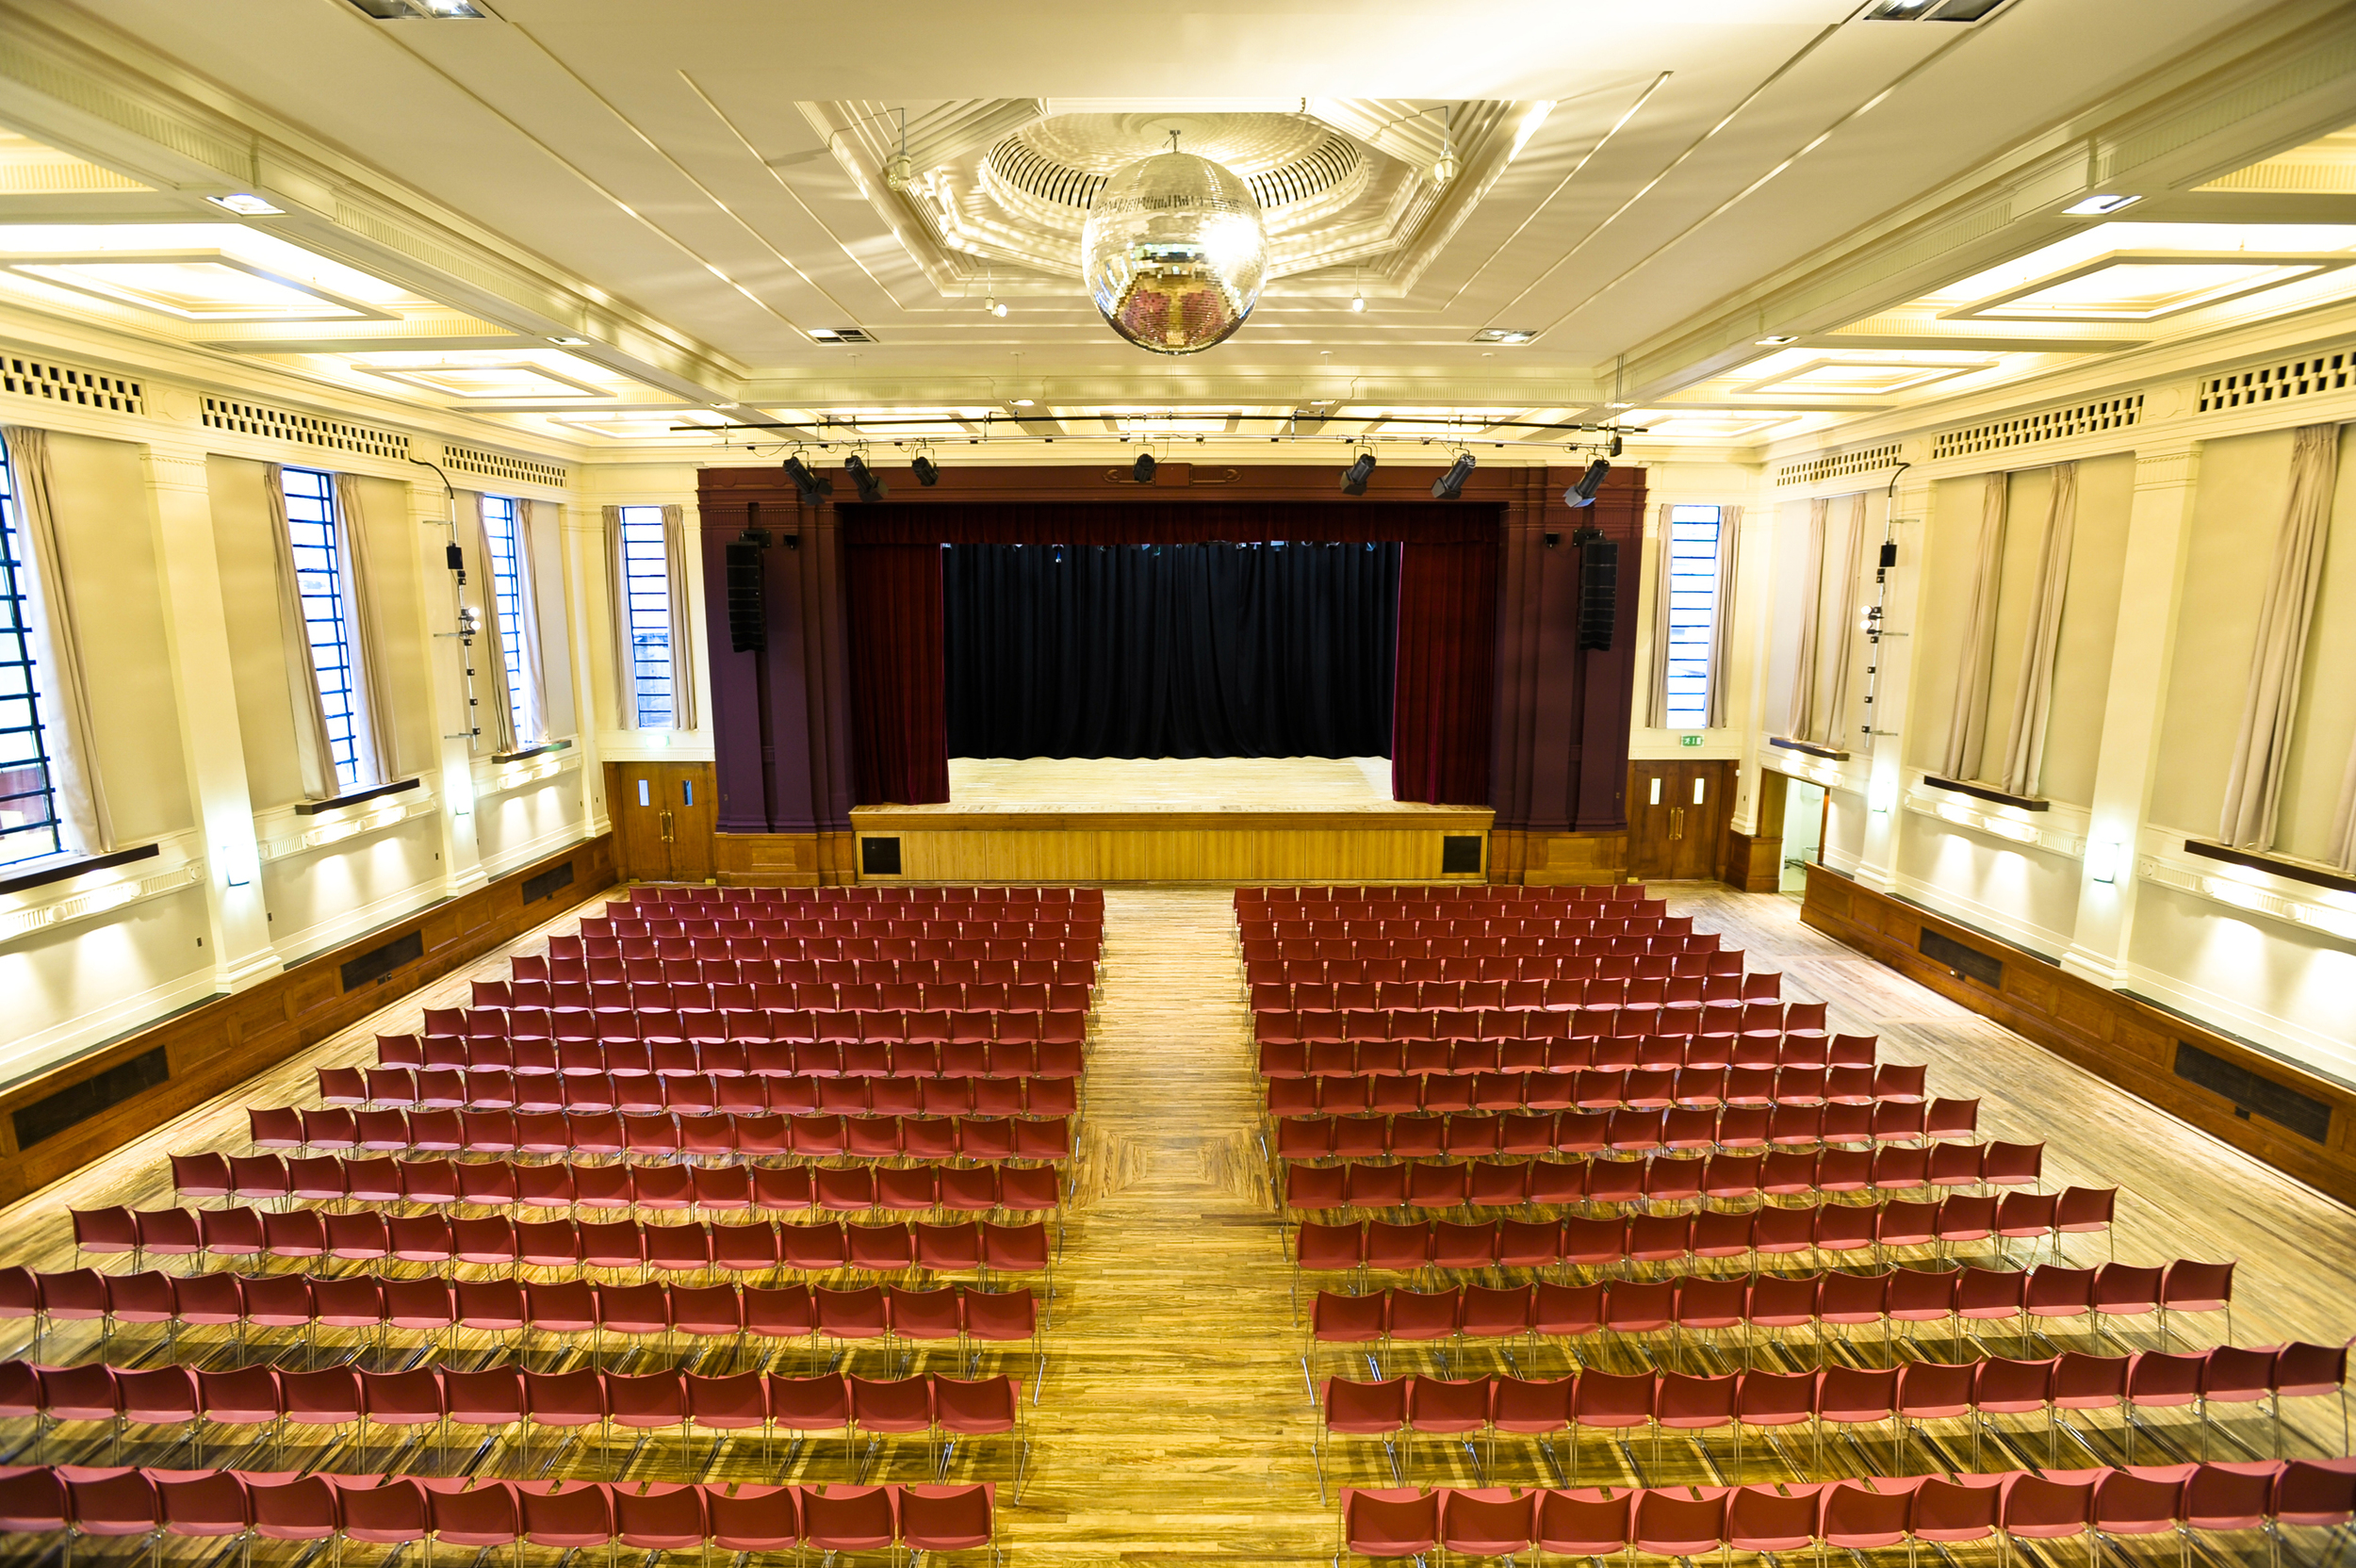 A conference in Stoke Newington Town Hall's Assembly Hall